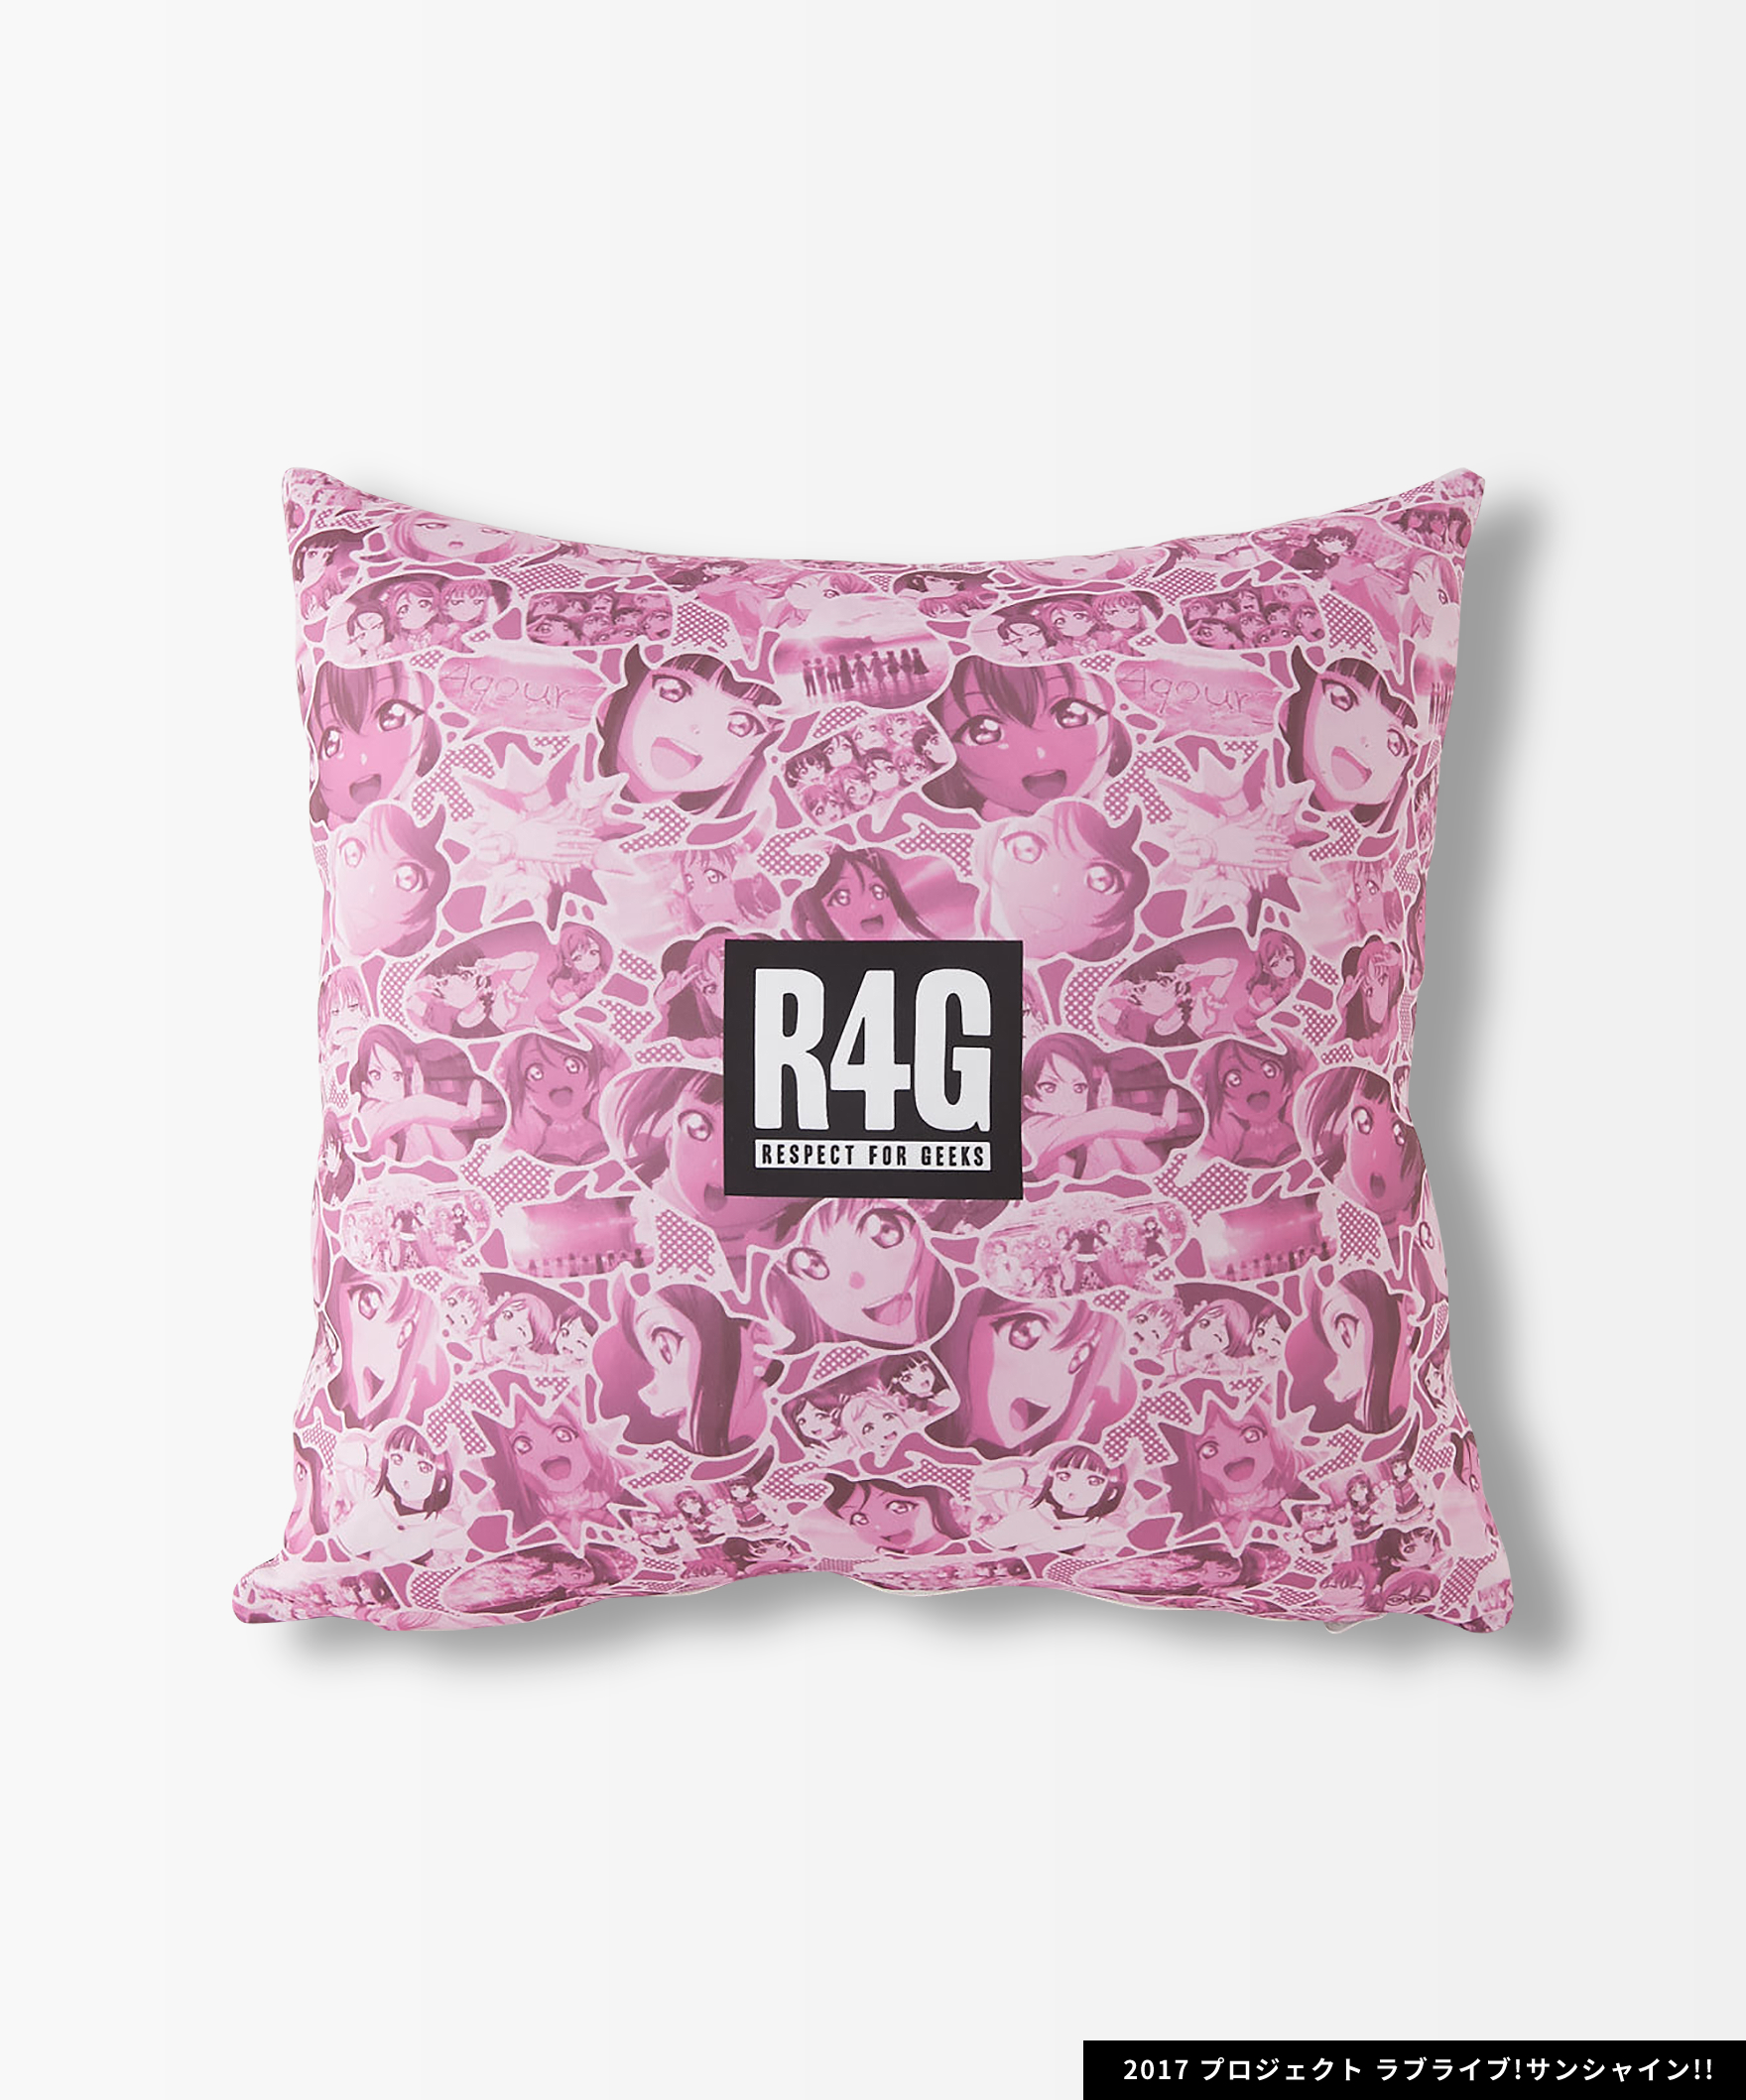 Aqours×R4G Cushion Cover(PNK)